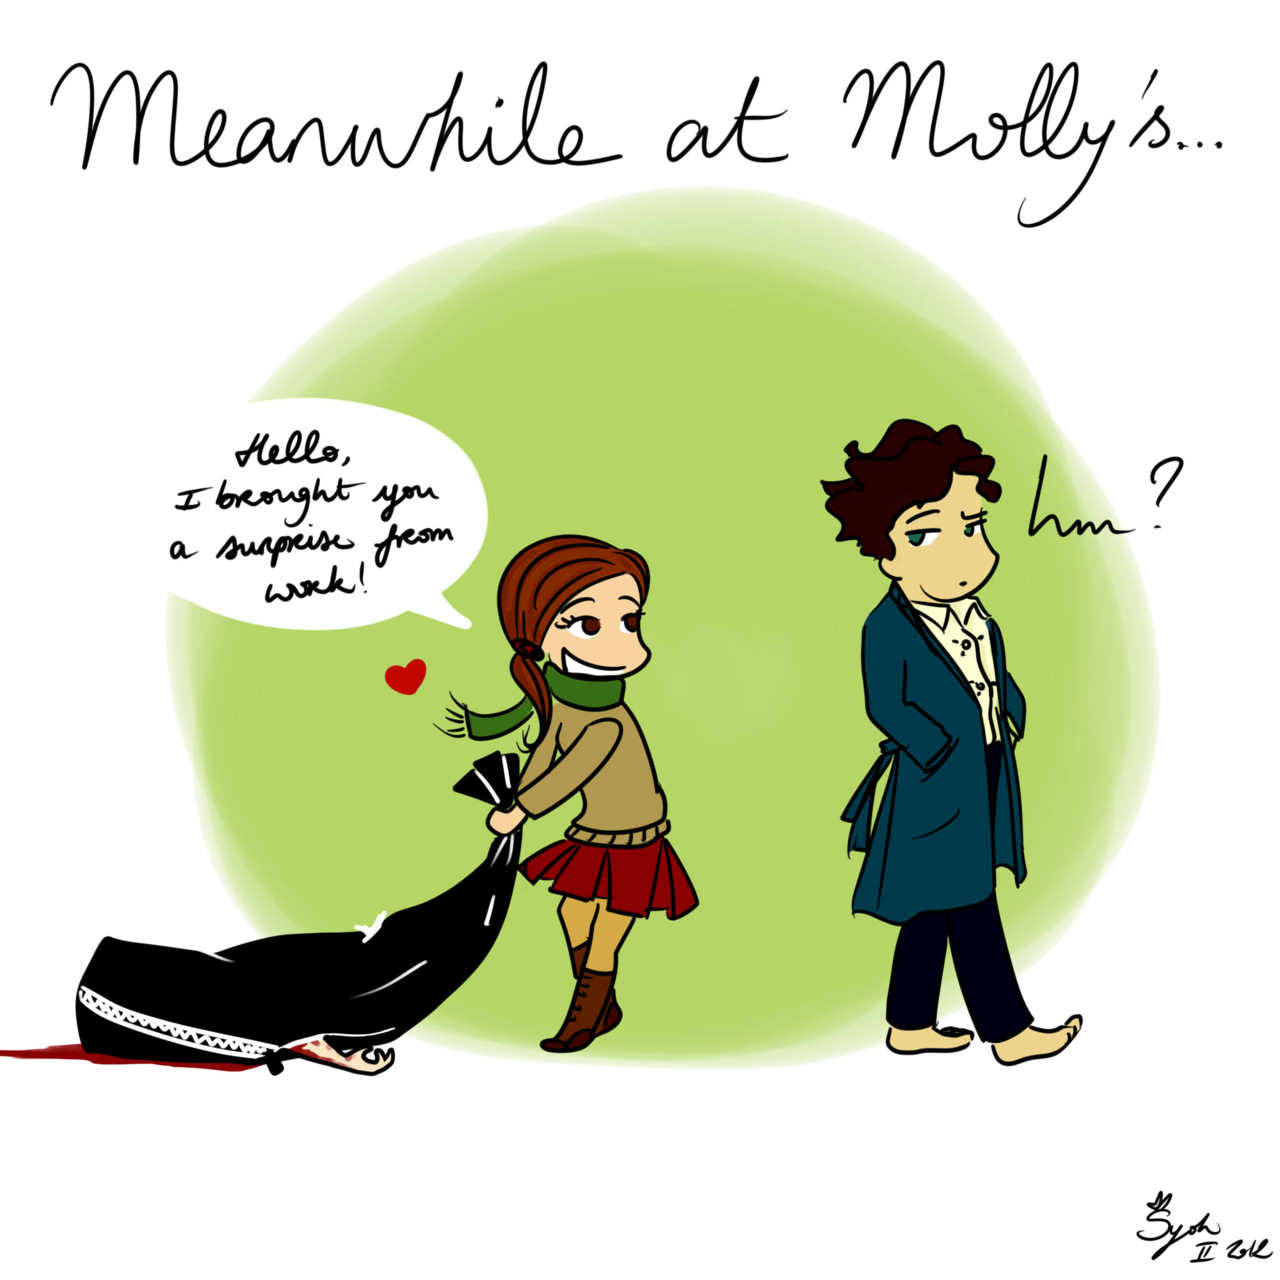 #2 Meanwhile at Molly's…  Because I'm wondering where is Sherlock & what he is doing while we build weird & absurd theories about his come-back. Molly looks like a person who cares a lot for others. Maybe, a bit too much…